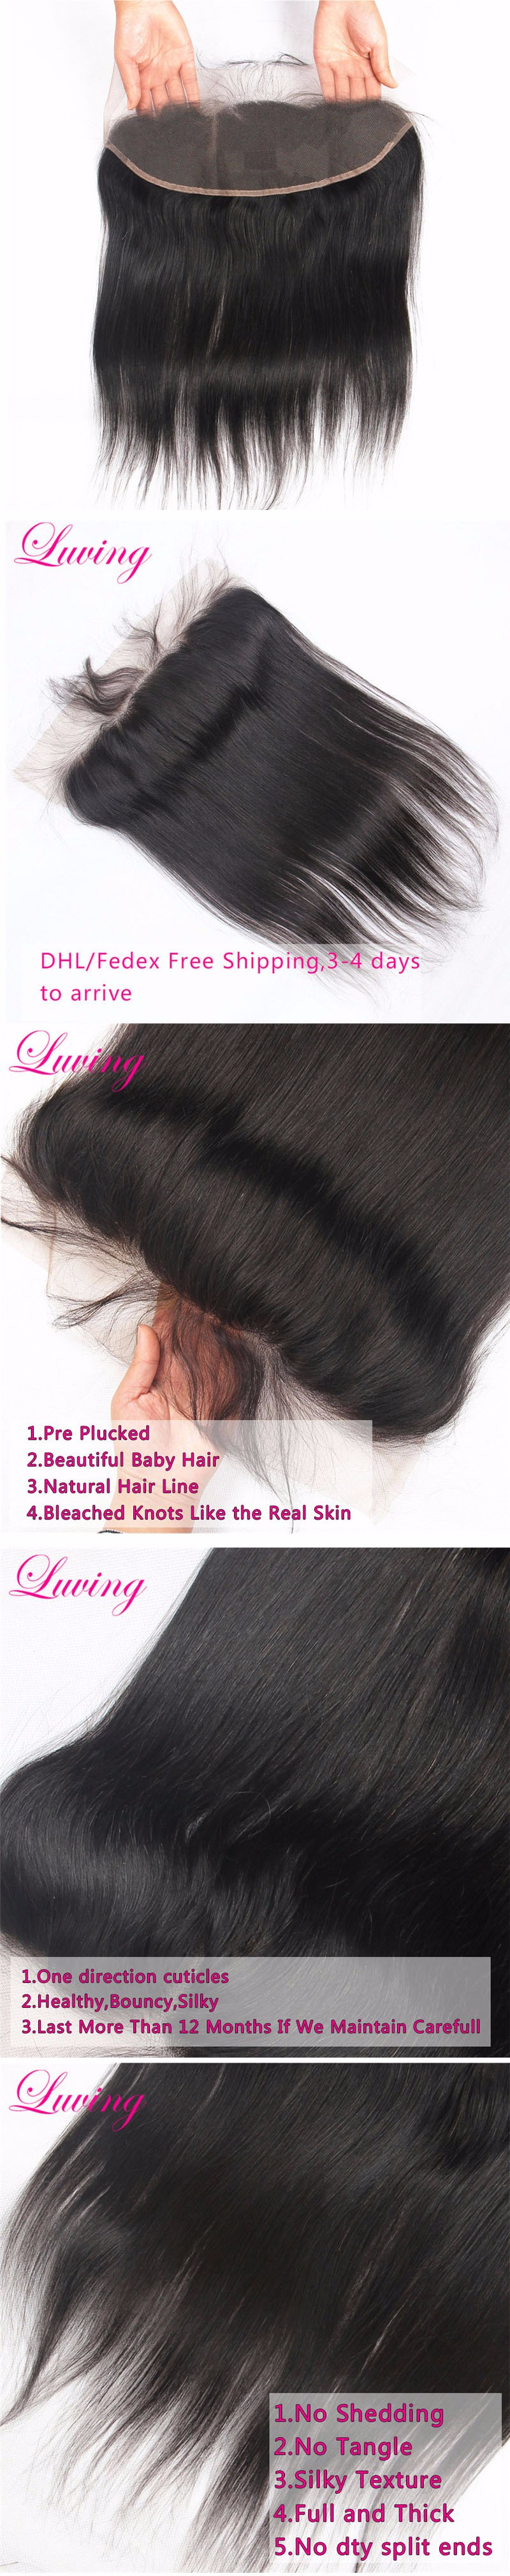 Peruvian Silky Straight Hair 13*4 Lace Frontal Closure With Baby Hair Natural Hairline Bleached Knots Free Middle 3 Part